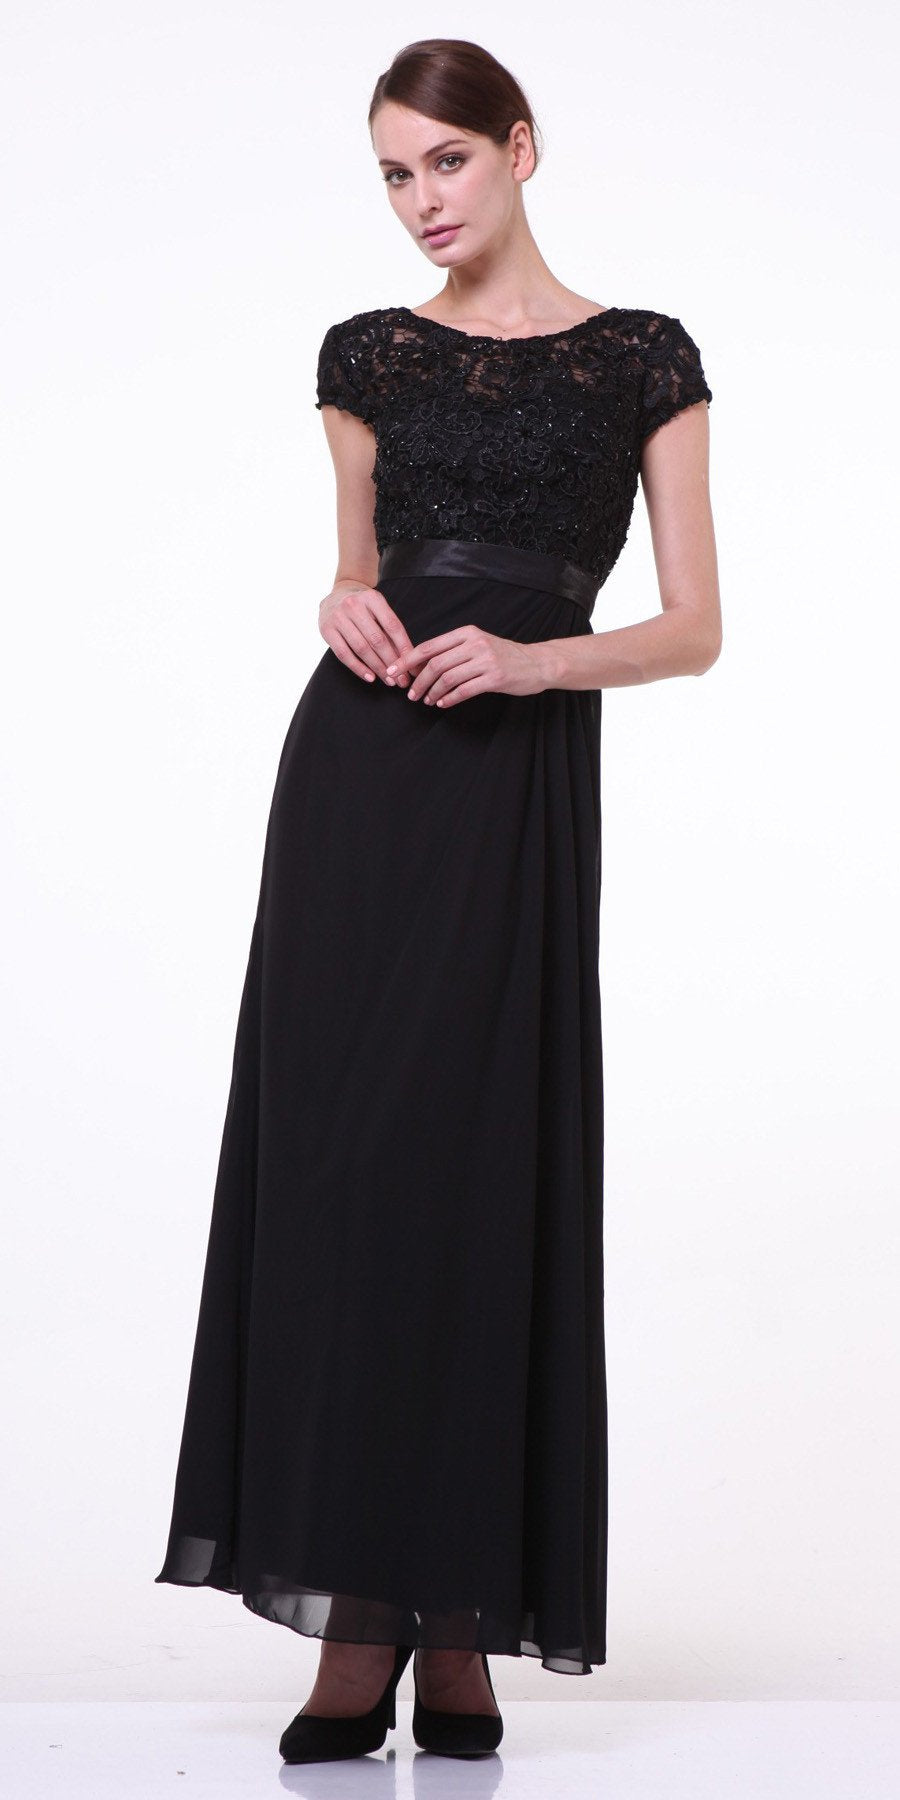 CLEARANCE - Plus Size Mother of Groom Black Dress Long Short Sleeve Lace  (Size 4XL)